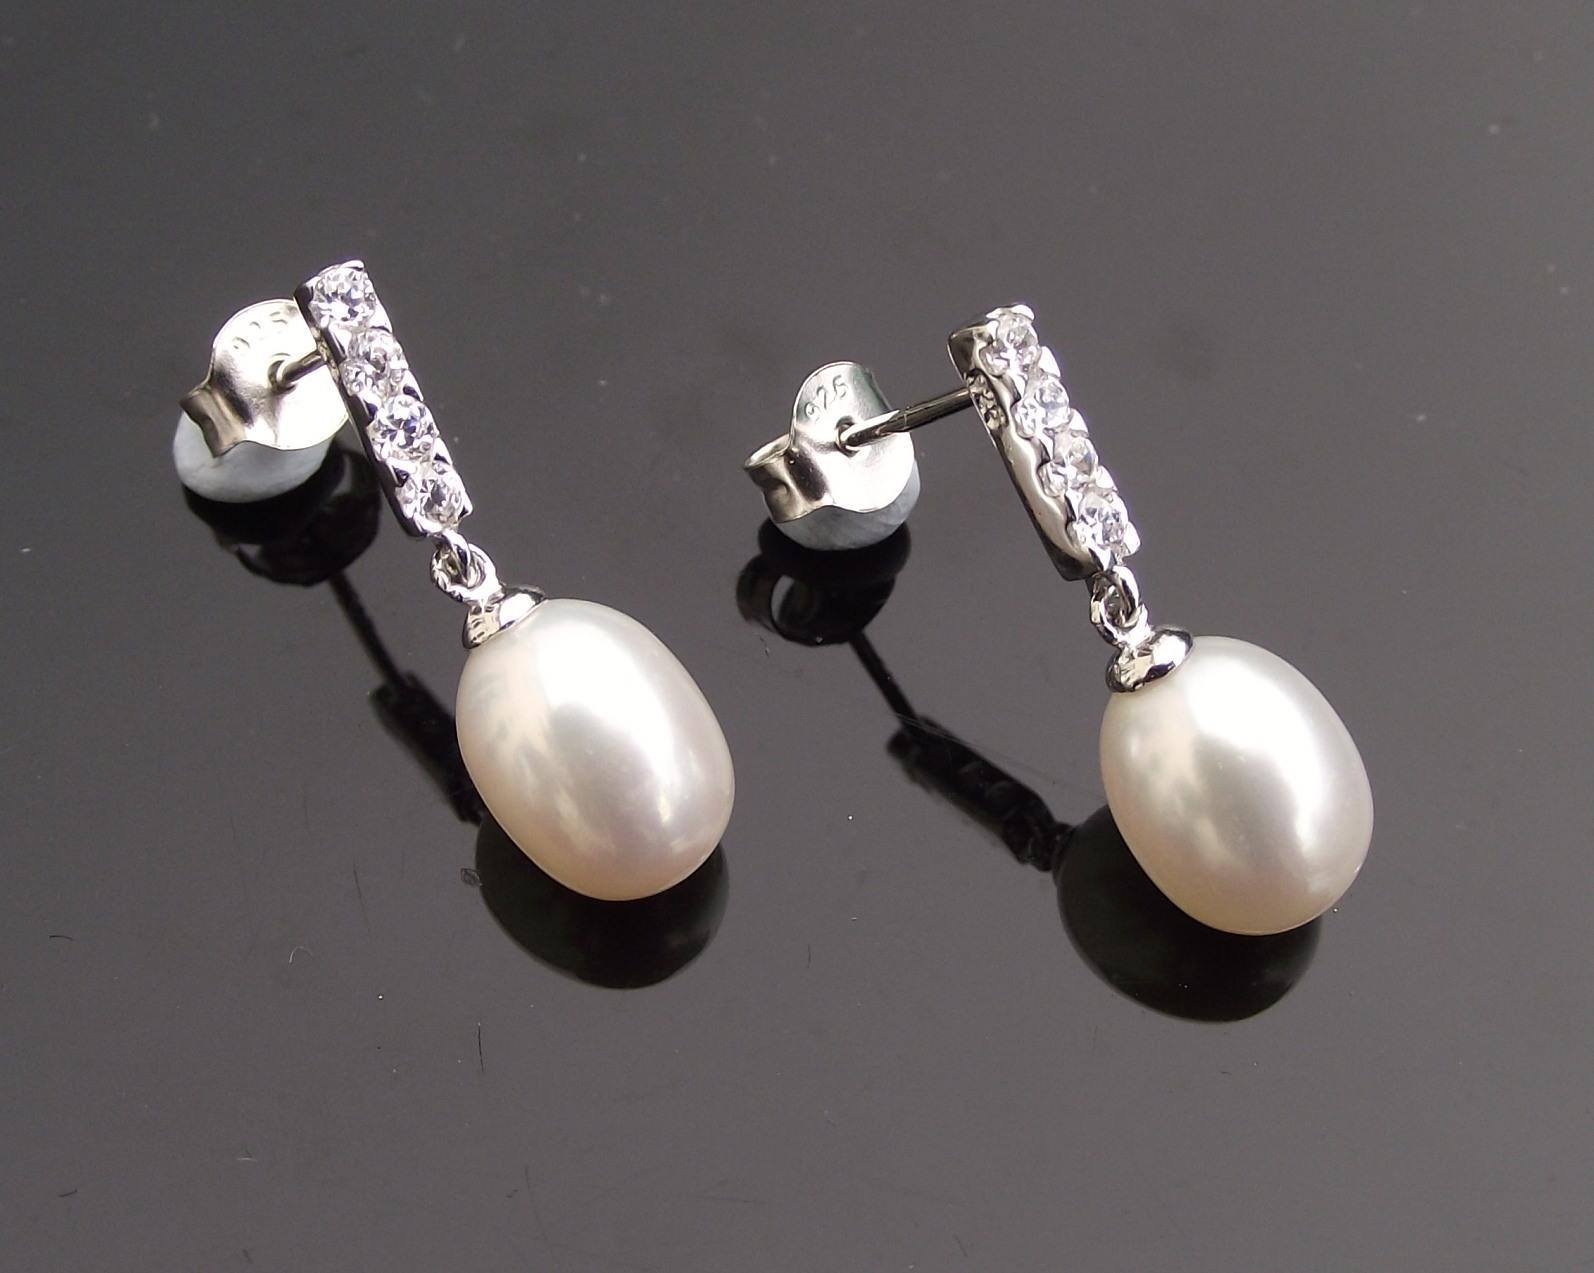 Wedding Earrings - Teardrop Freshwater Pearl Earrings & Sterling Silver, Mimi